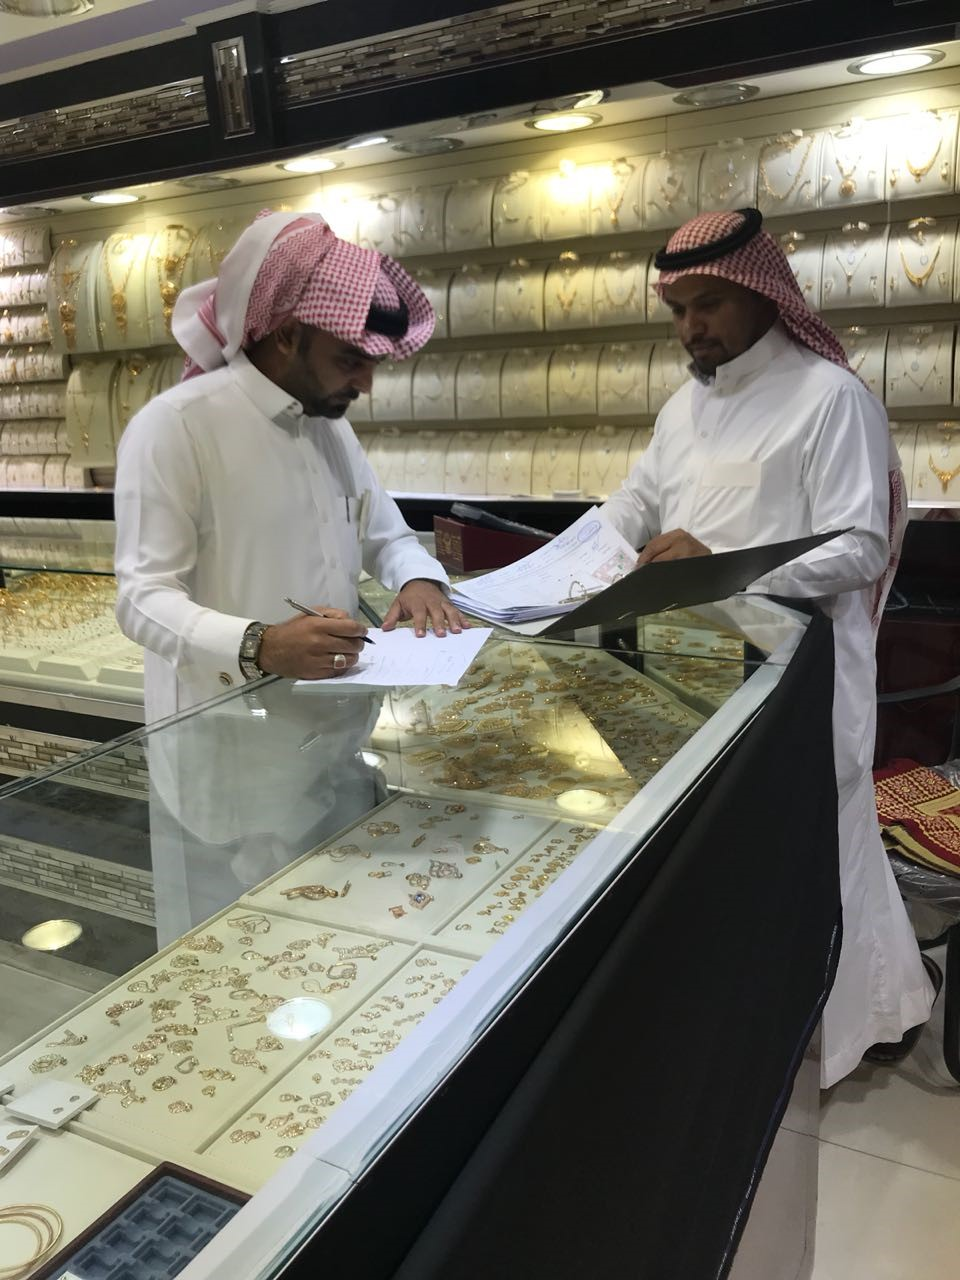 25,000 inspection rounds target gold and jewelry sector in 2018, uncovering 921 violations related to nationalization decision